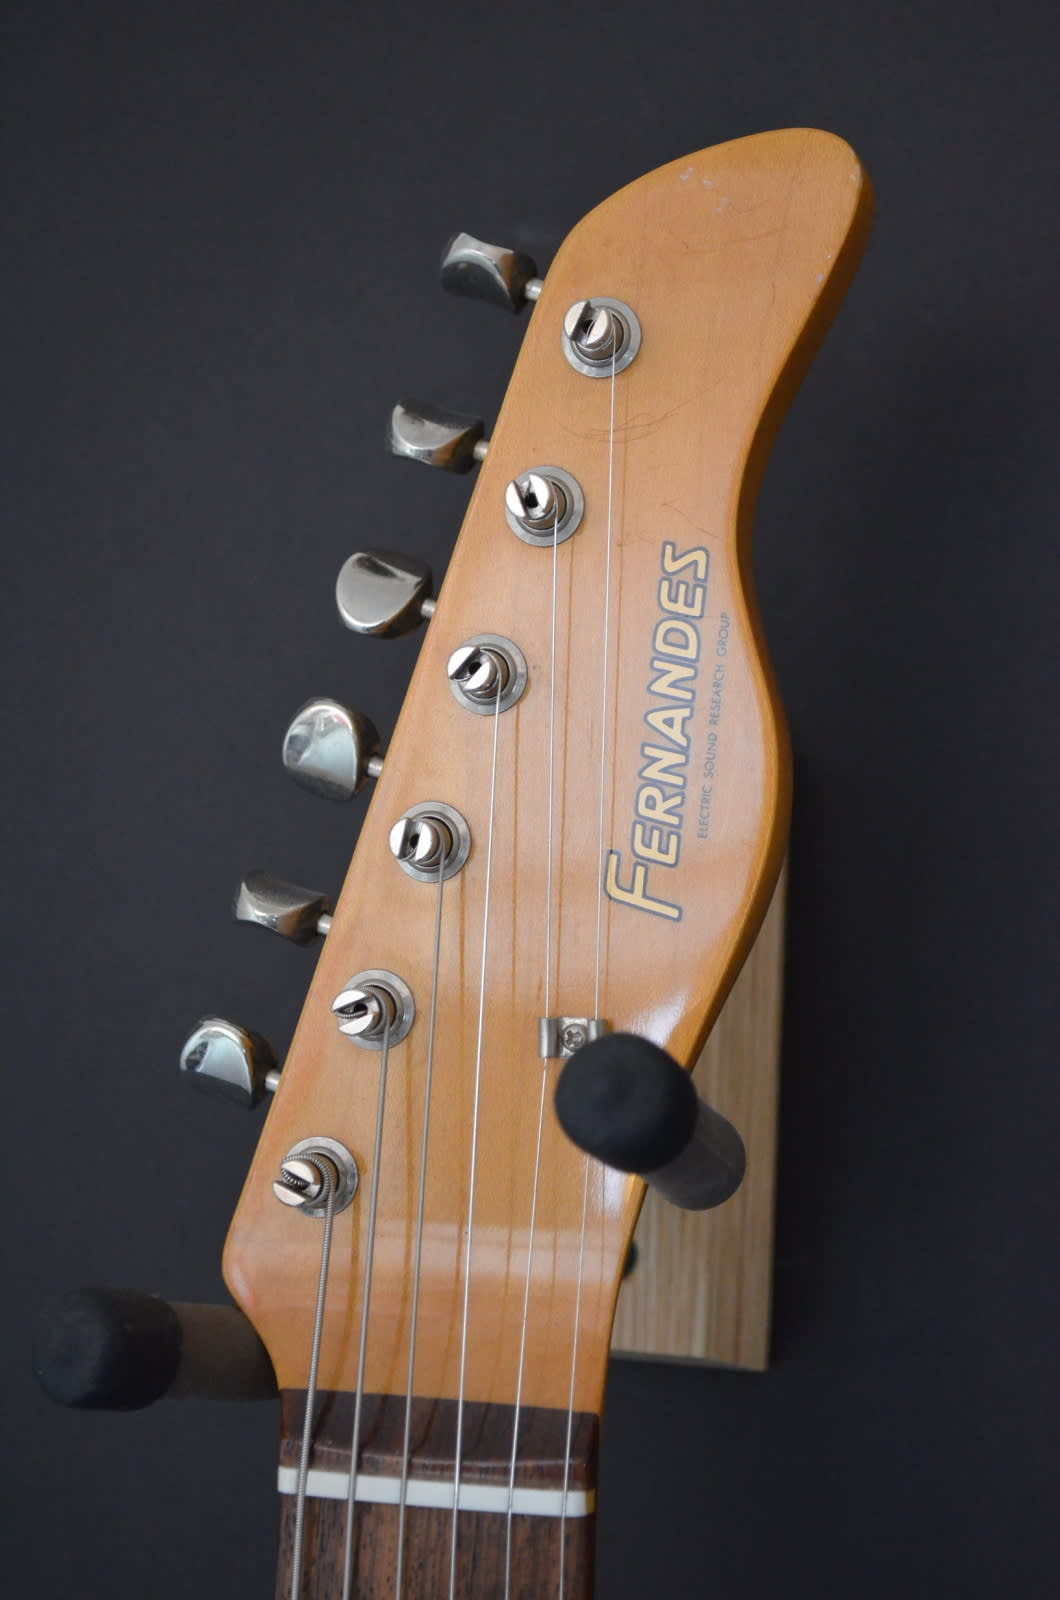 dating japanese telecaster Fernandes guitars - official web site - online product catalog, news, artists, guitars, basses and accessories.